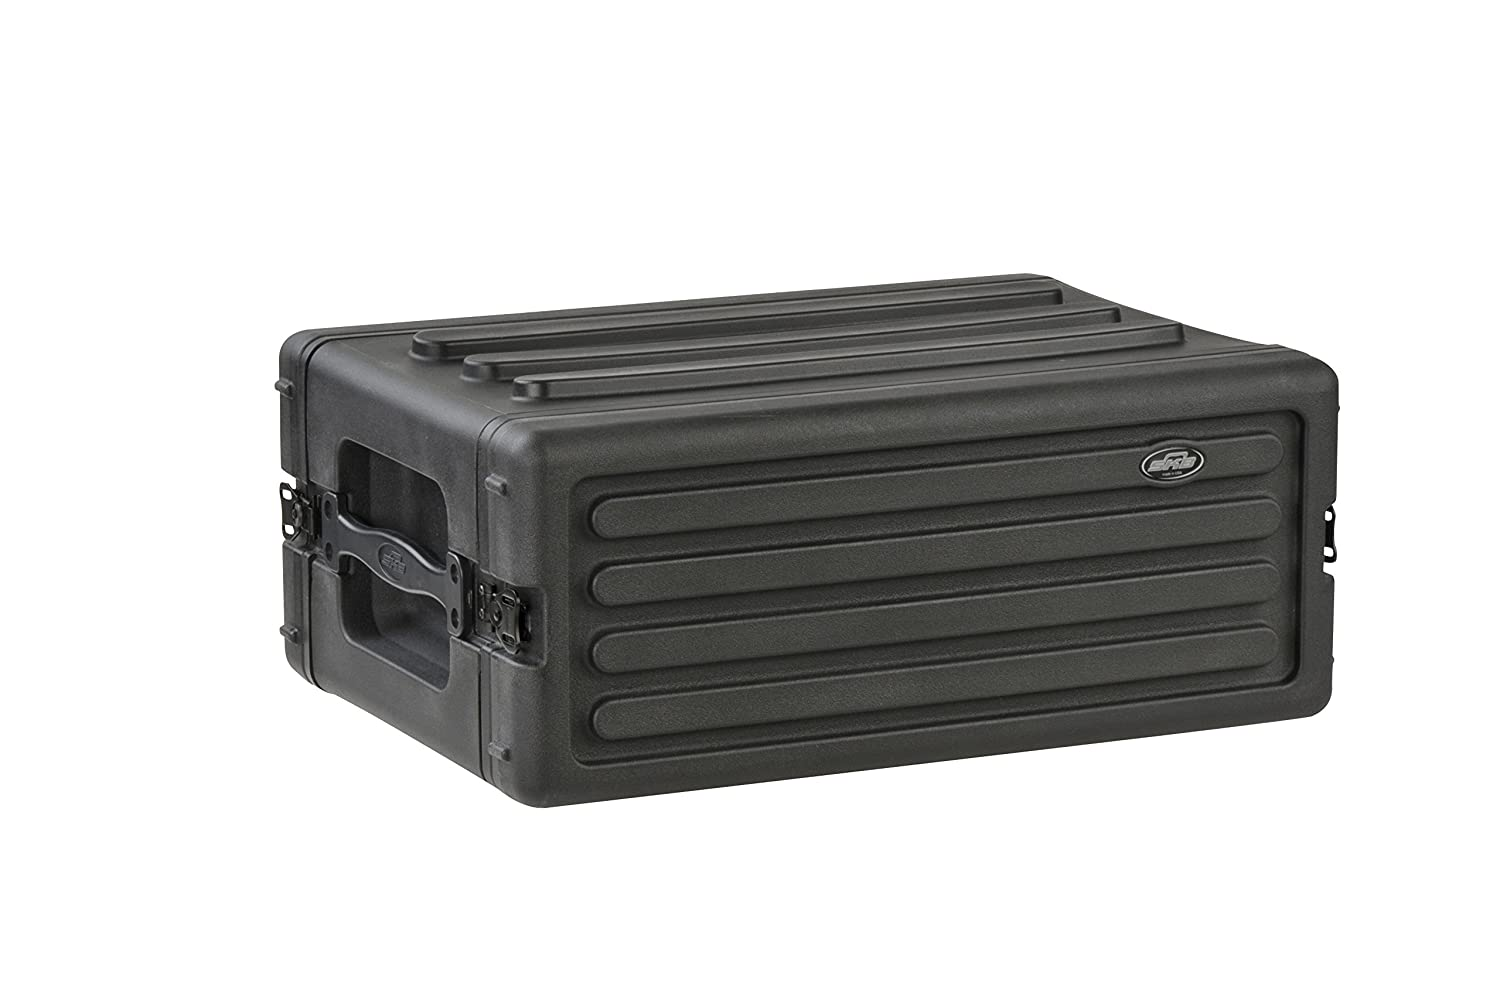 SKB 1SKB-R6S 6U Shallow Roto Rack with Steel Rails Front/Back, 10.5-Inch Deep Rail to Rail SKB Cases